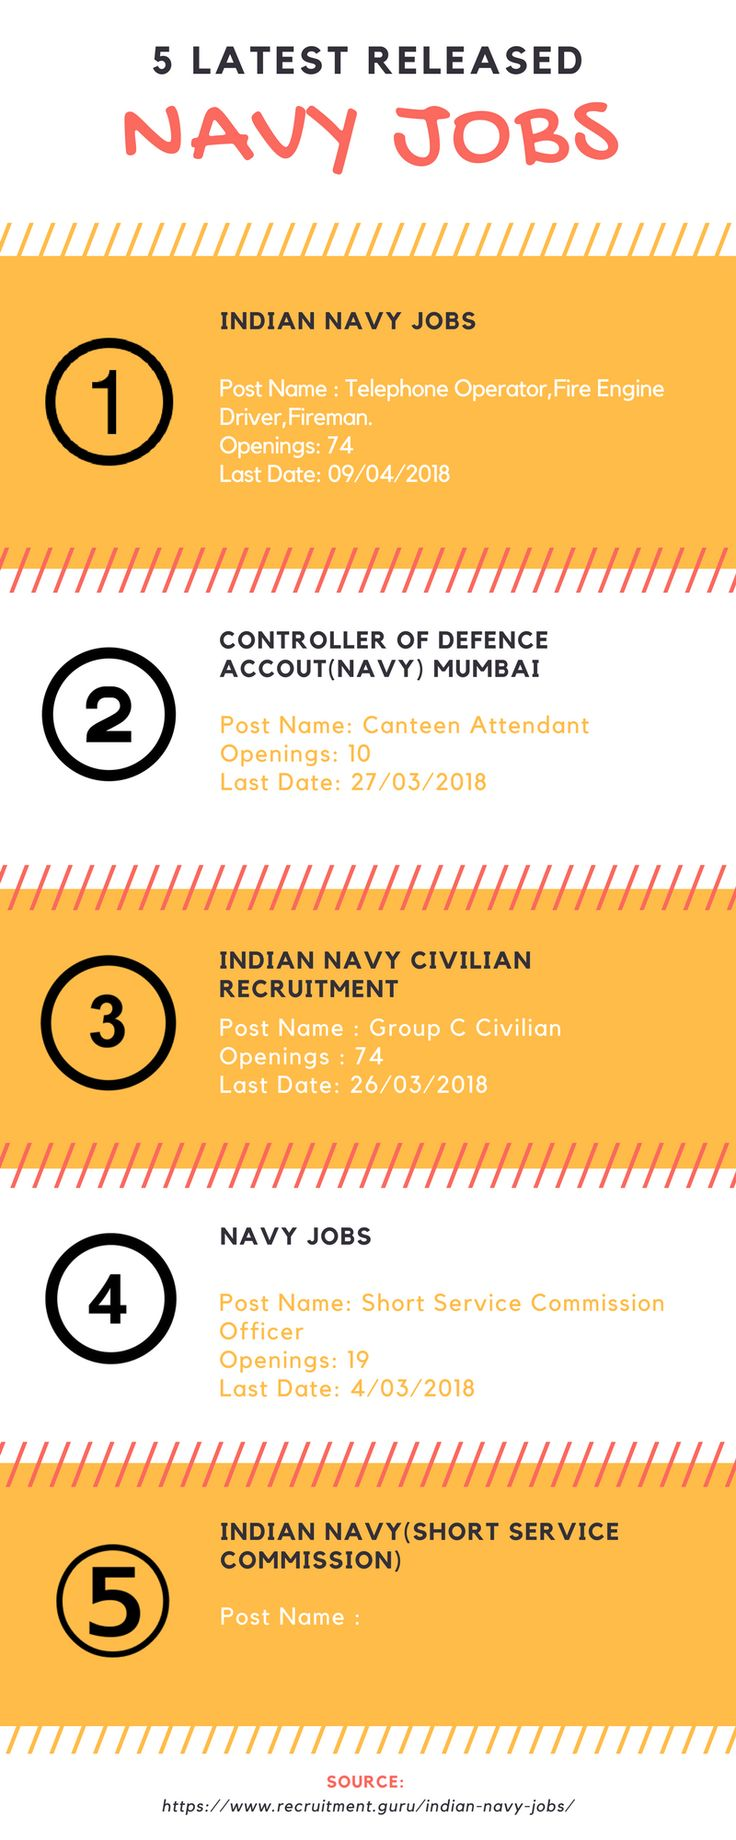 Indian Navy Jobs 2018. Check out latest released Navy Jobs 2018.